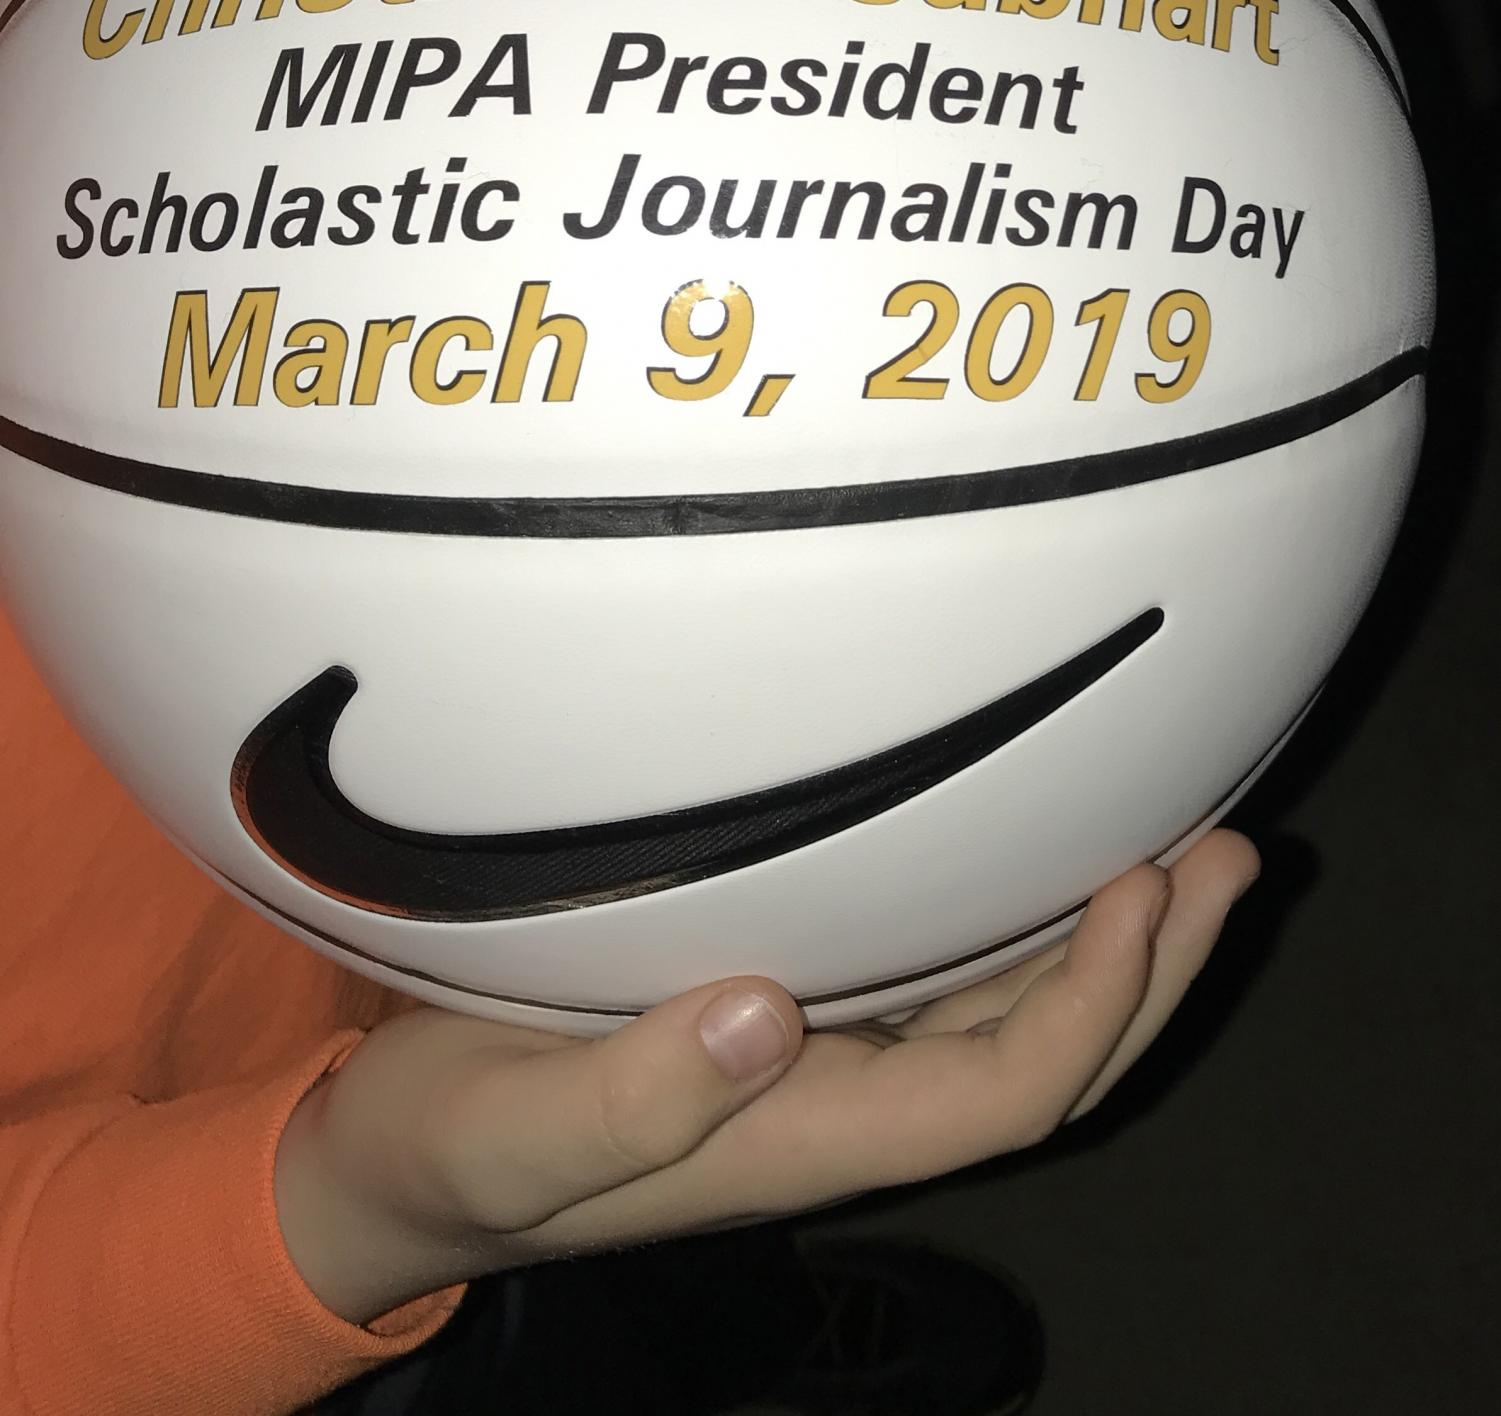 The+official+game+ball+was+presented+in+honor+of+the+50th+MIPA+J-Day.+